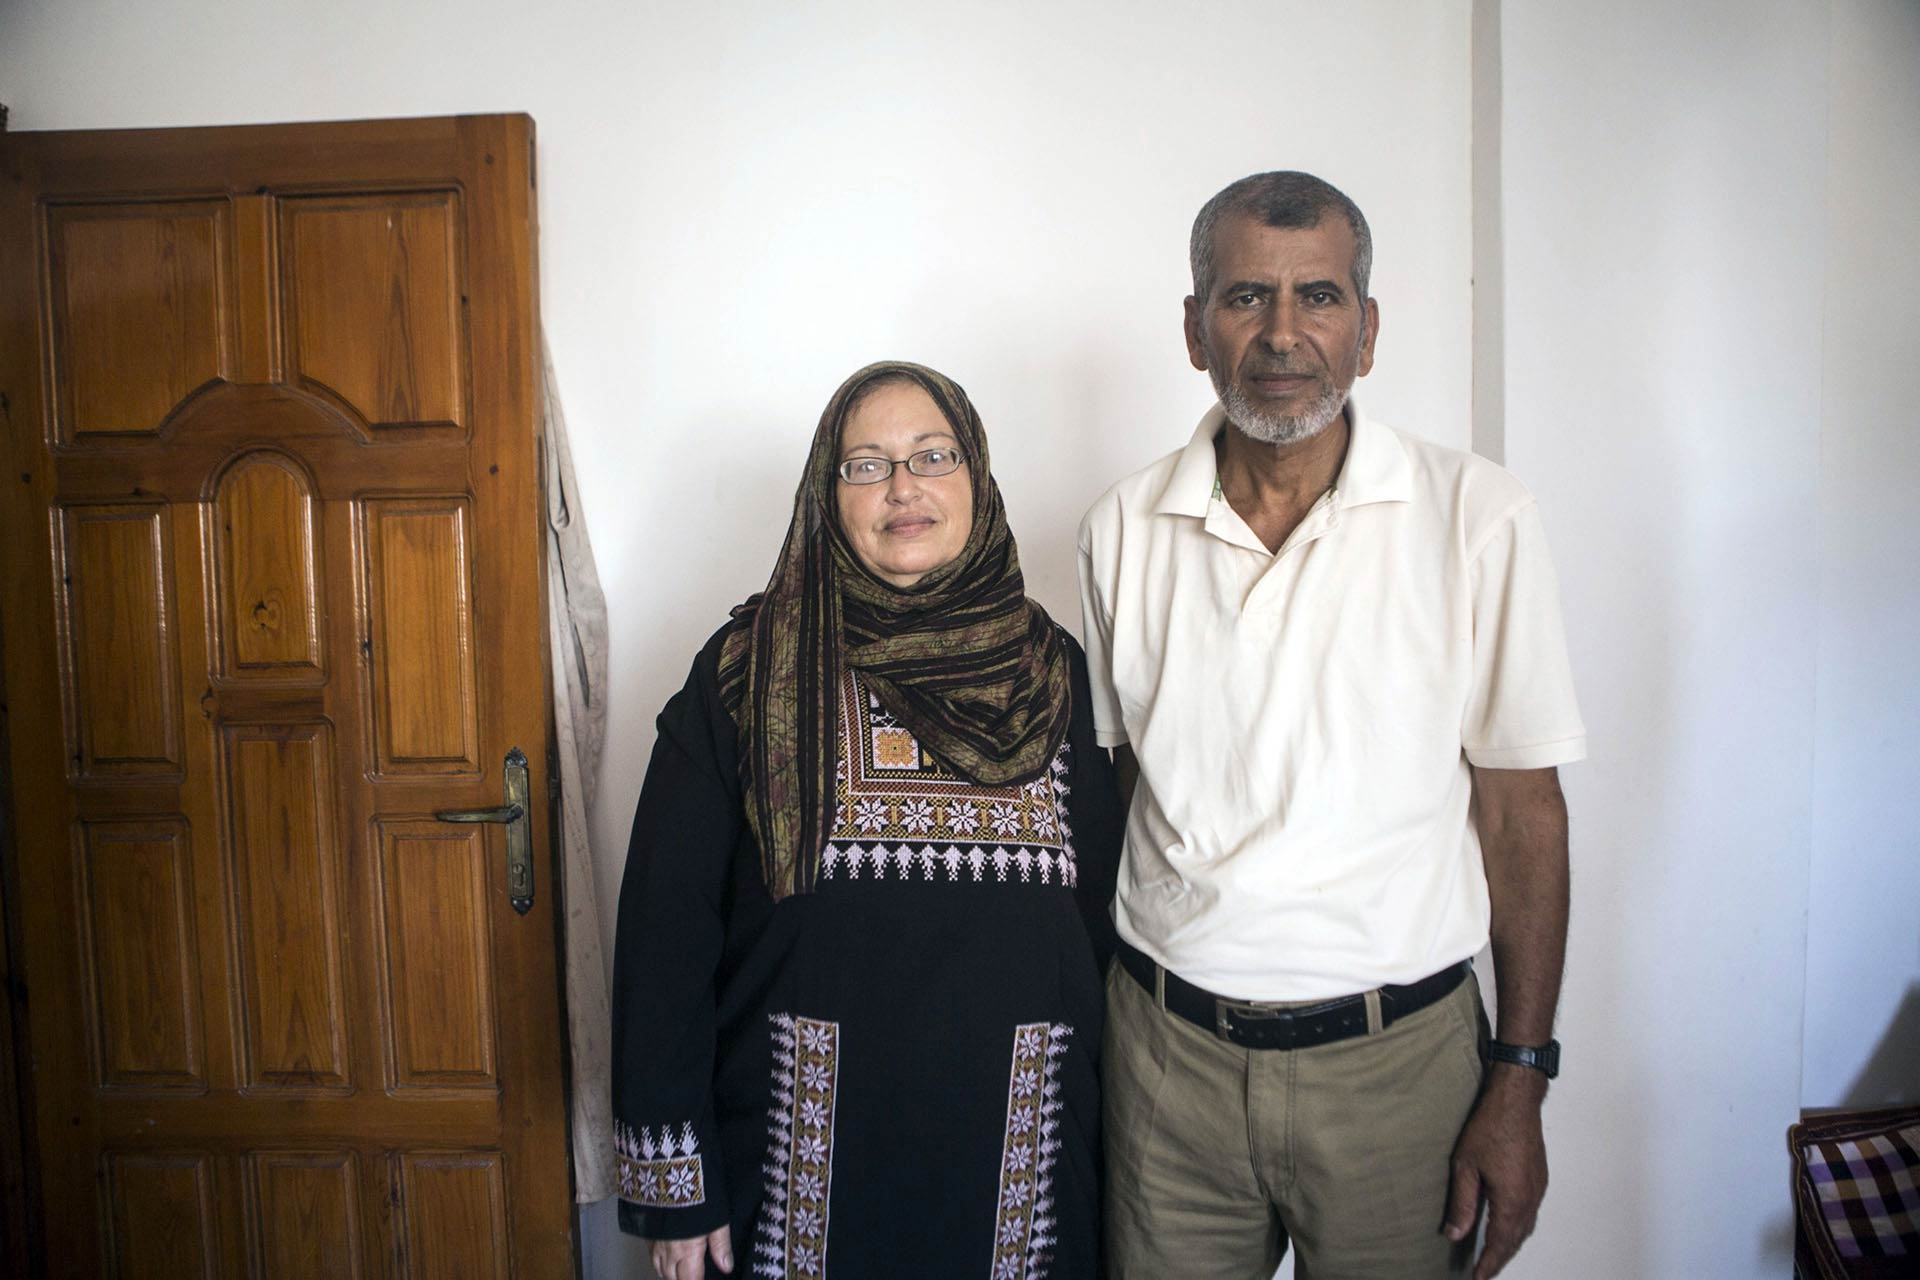 Both Buseina and Mustafa held on to their usual daily habits throughout the Israeli offensive. Buseina would get up before the morning prayer to make tea, and Mustafa would join her in the kitchen soon after.